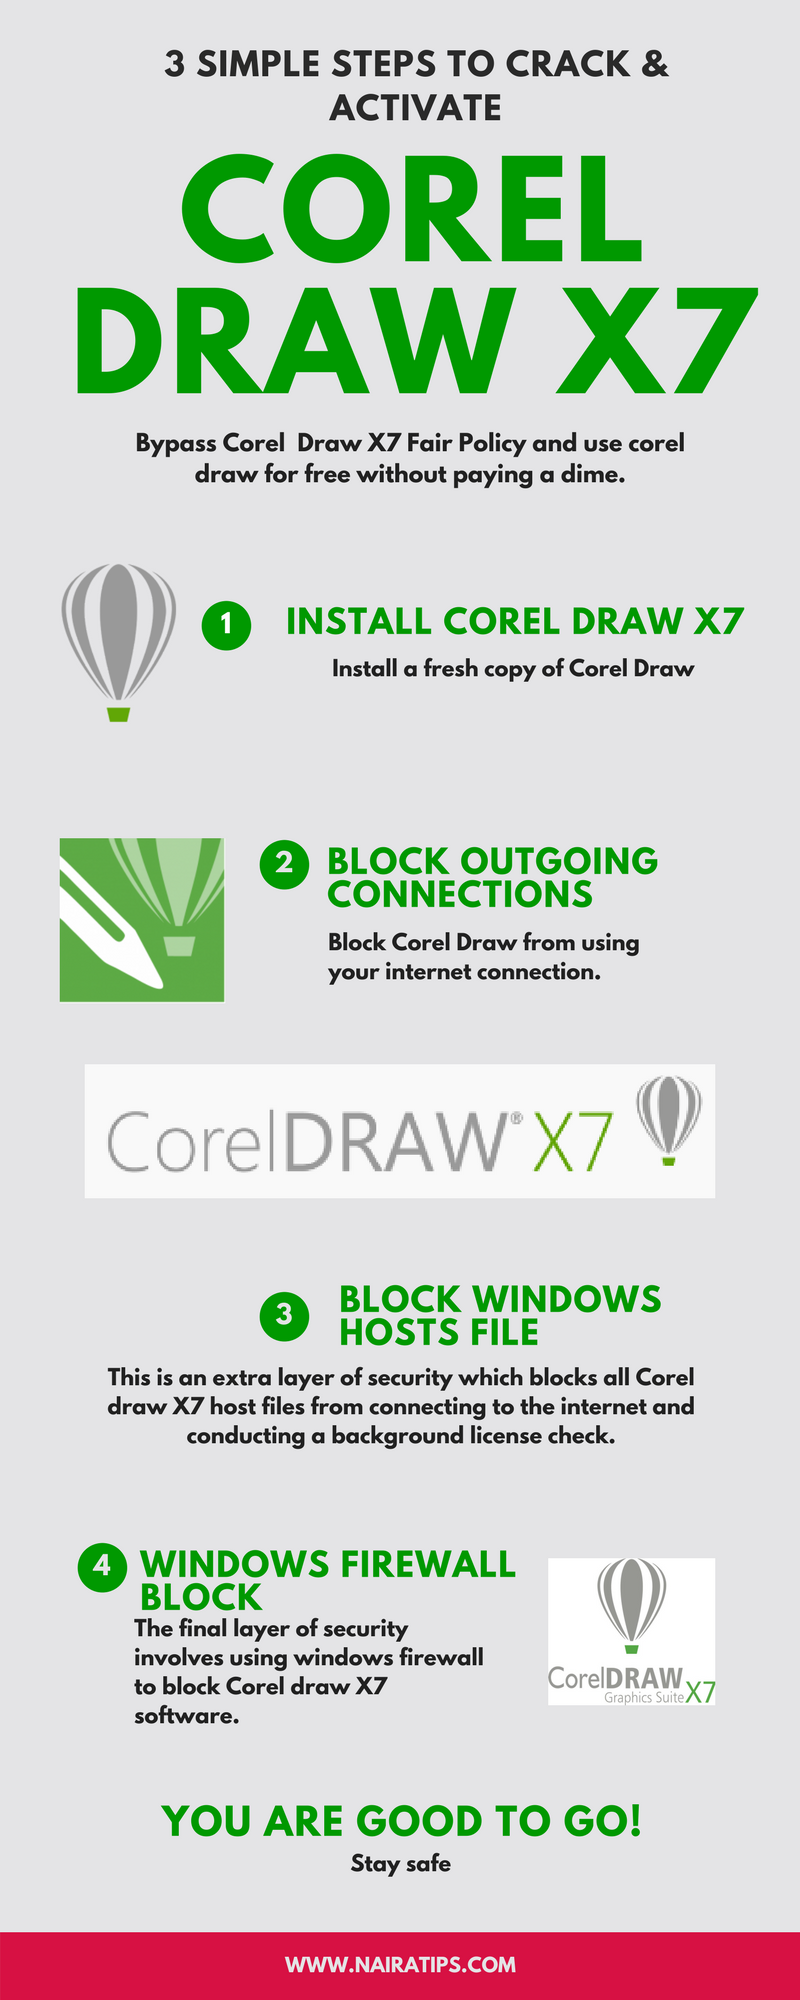 How to Crack & Activate Corel Draw X7 for life (2019 Guide